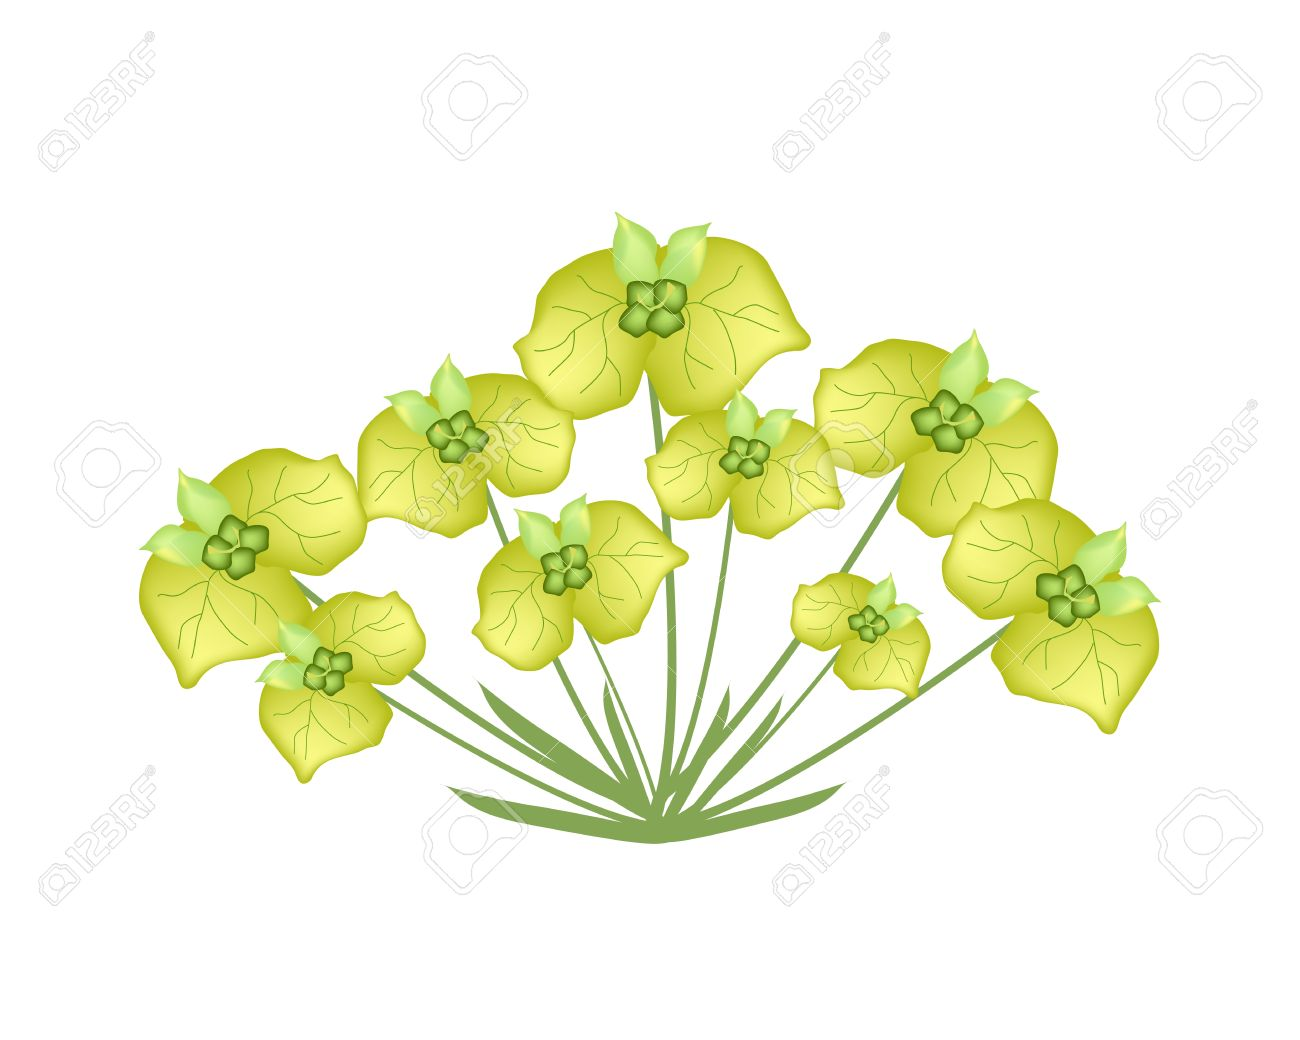 Illustration Of Yellow Cypress Spurge Or Euphorbia Cyparissias.